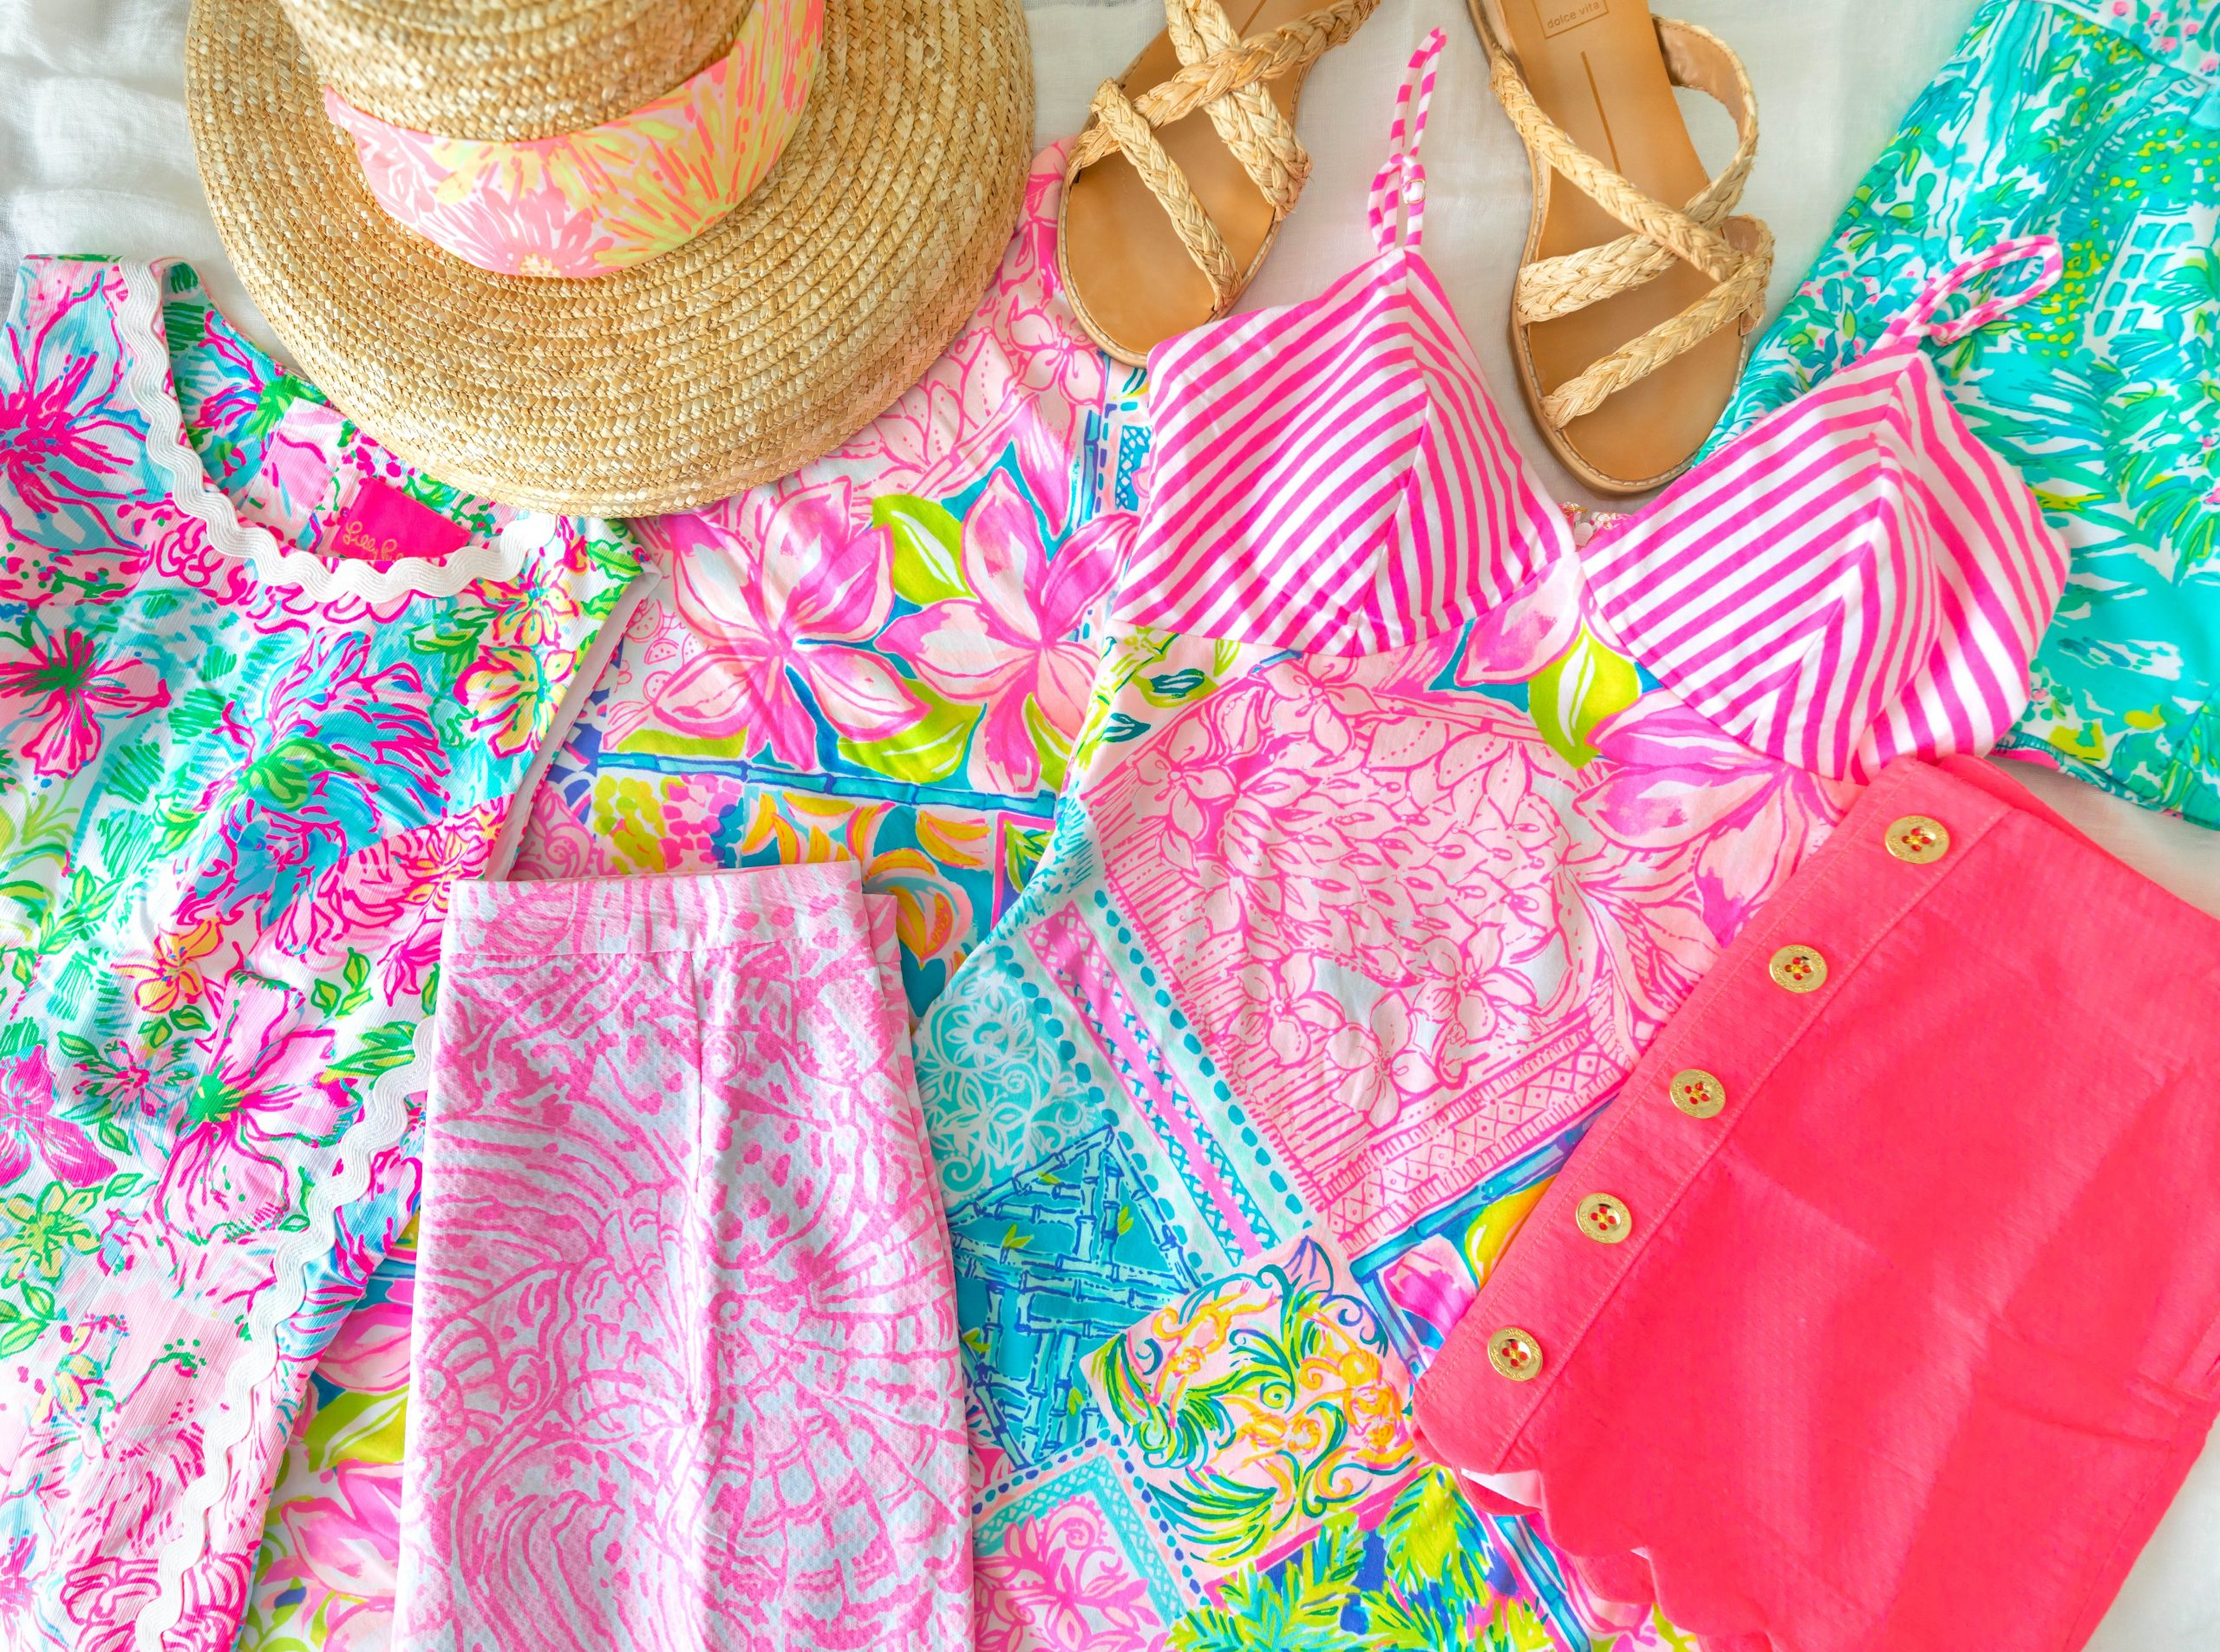 Preppy Feminine Fun Colorful Clothing Palm Beach What I Bought in the Lilly Pulitzer After Party Sale My Lilly Pulitzer Sale Haul by Annie Fairfax